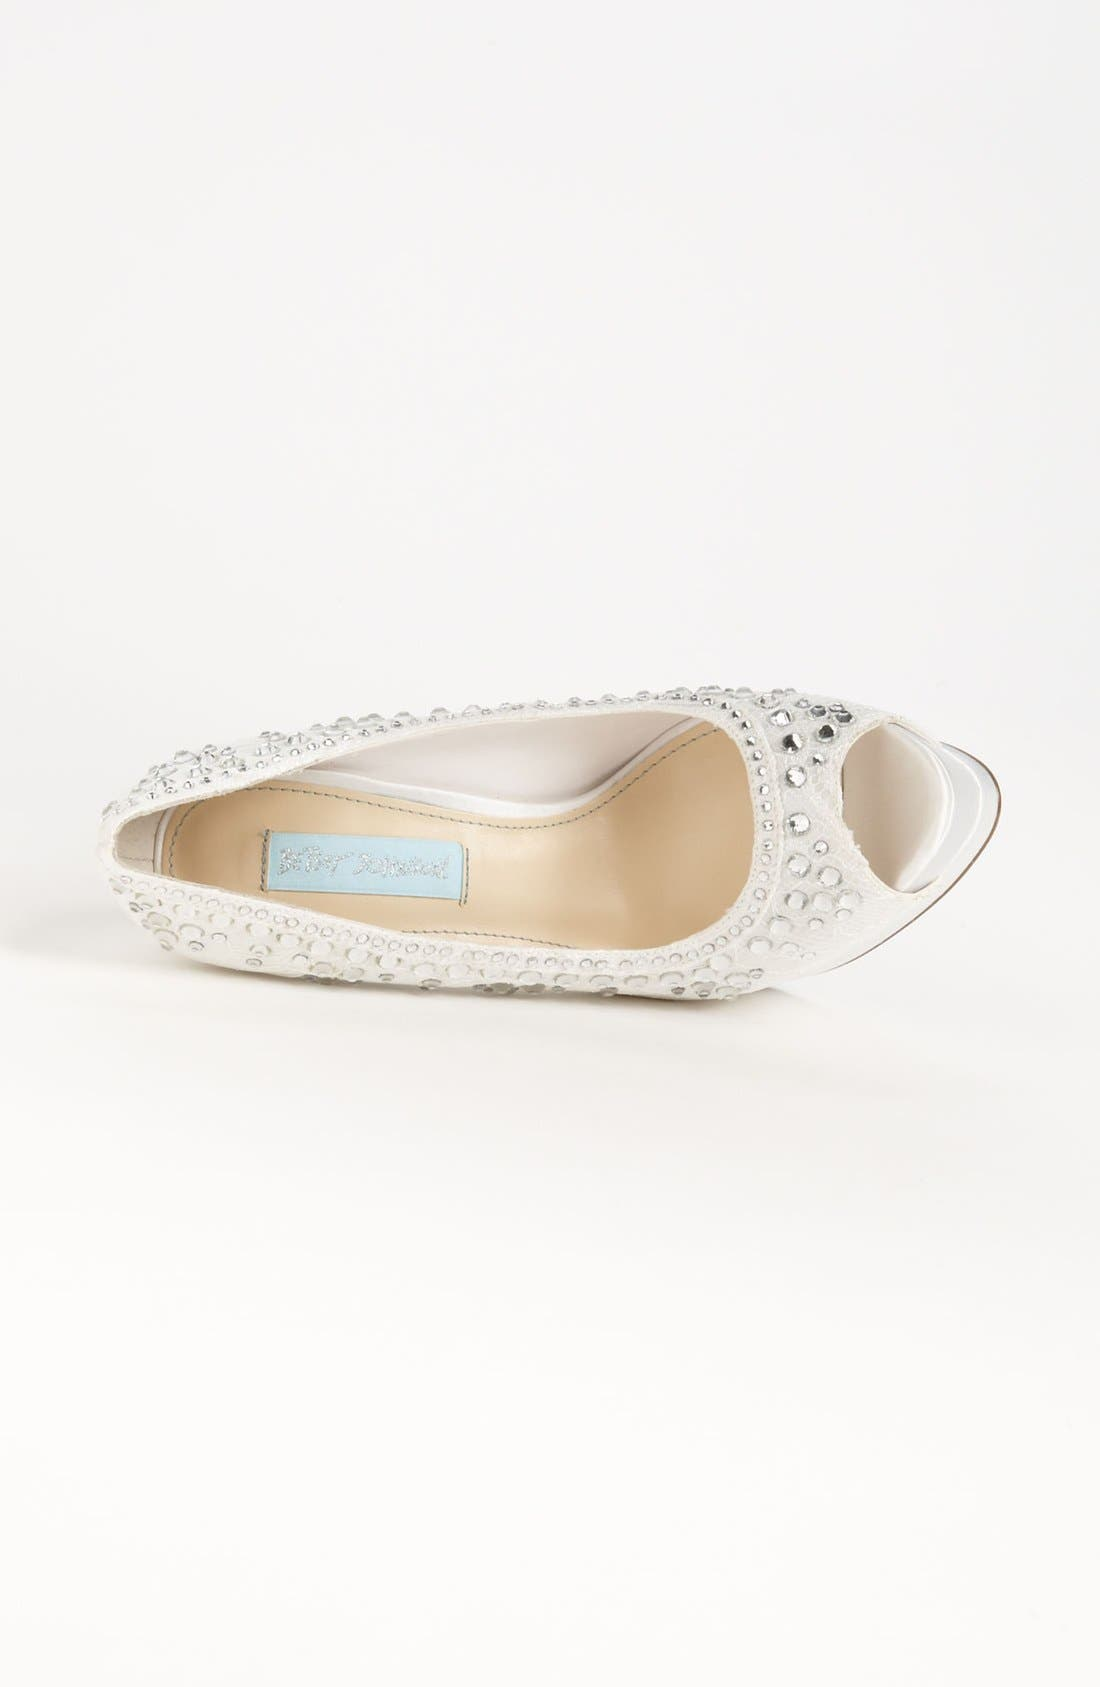 Alternate Image 3  - Blue by Betsey Johnson 'Vow' Pump